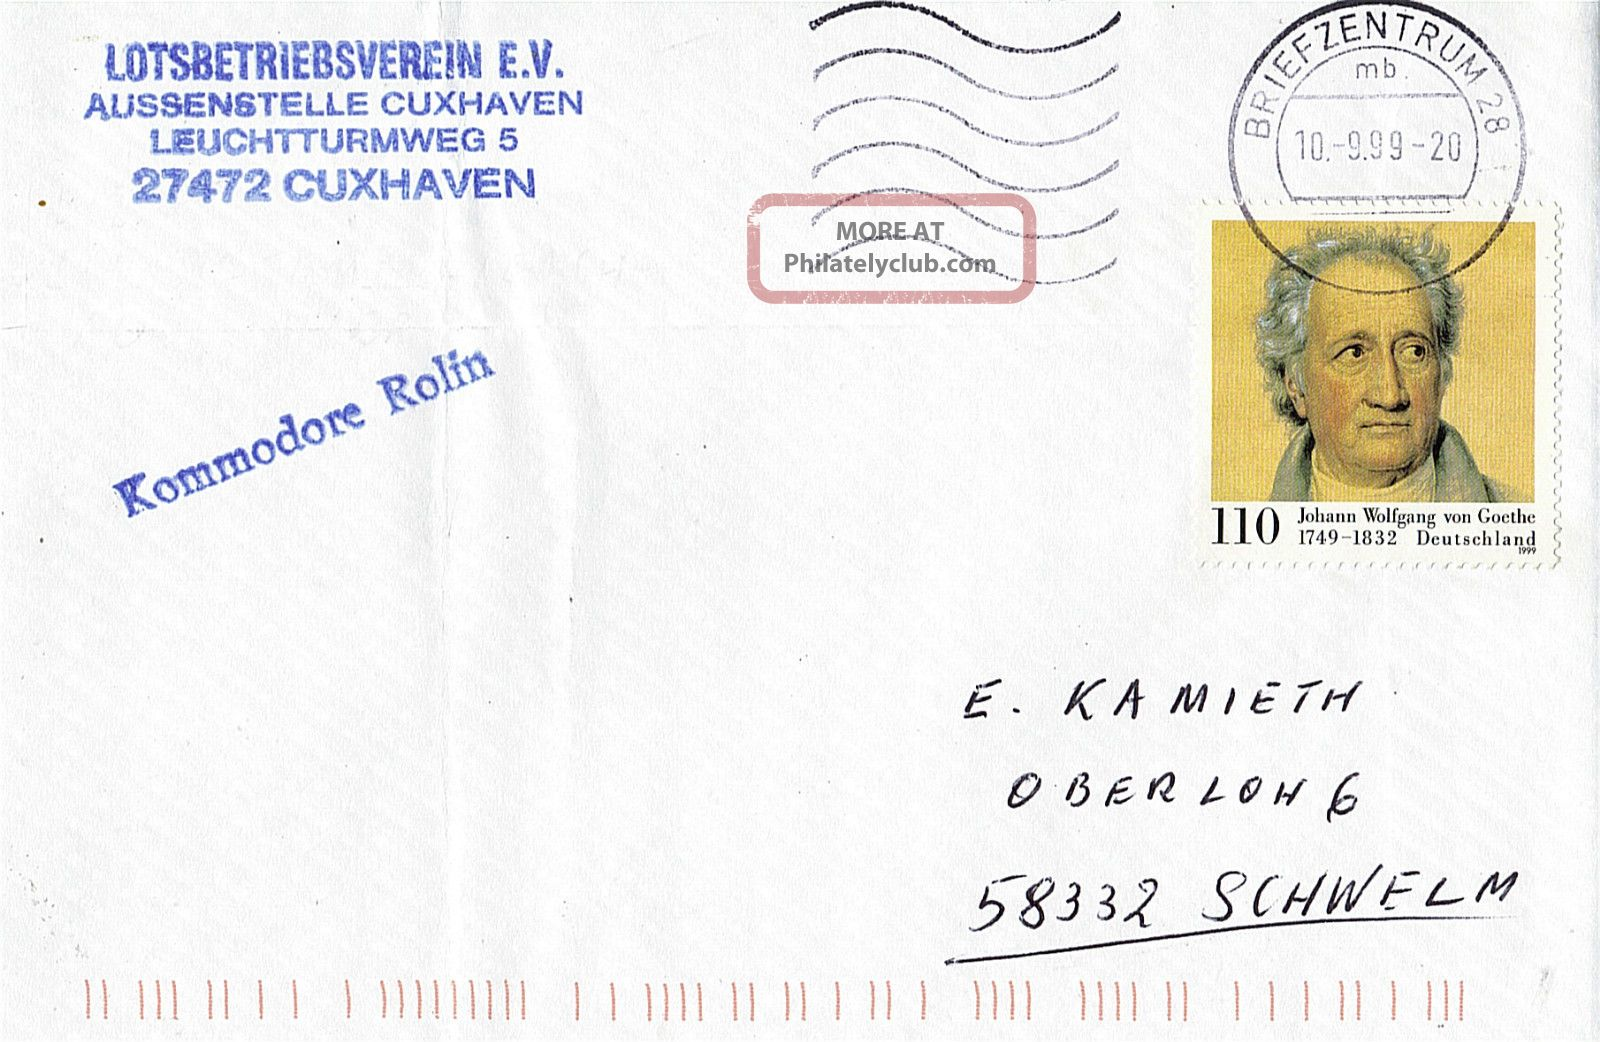 German Pilot Ship Ls Kommodore Rolin Ships Cached Cover Europe photo